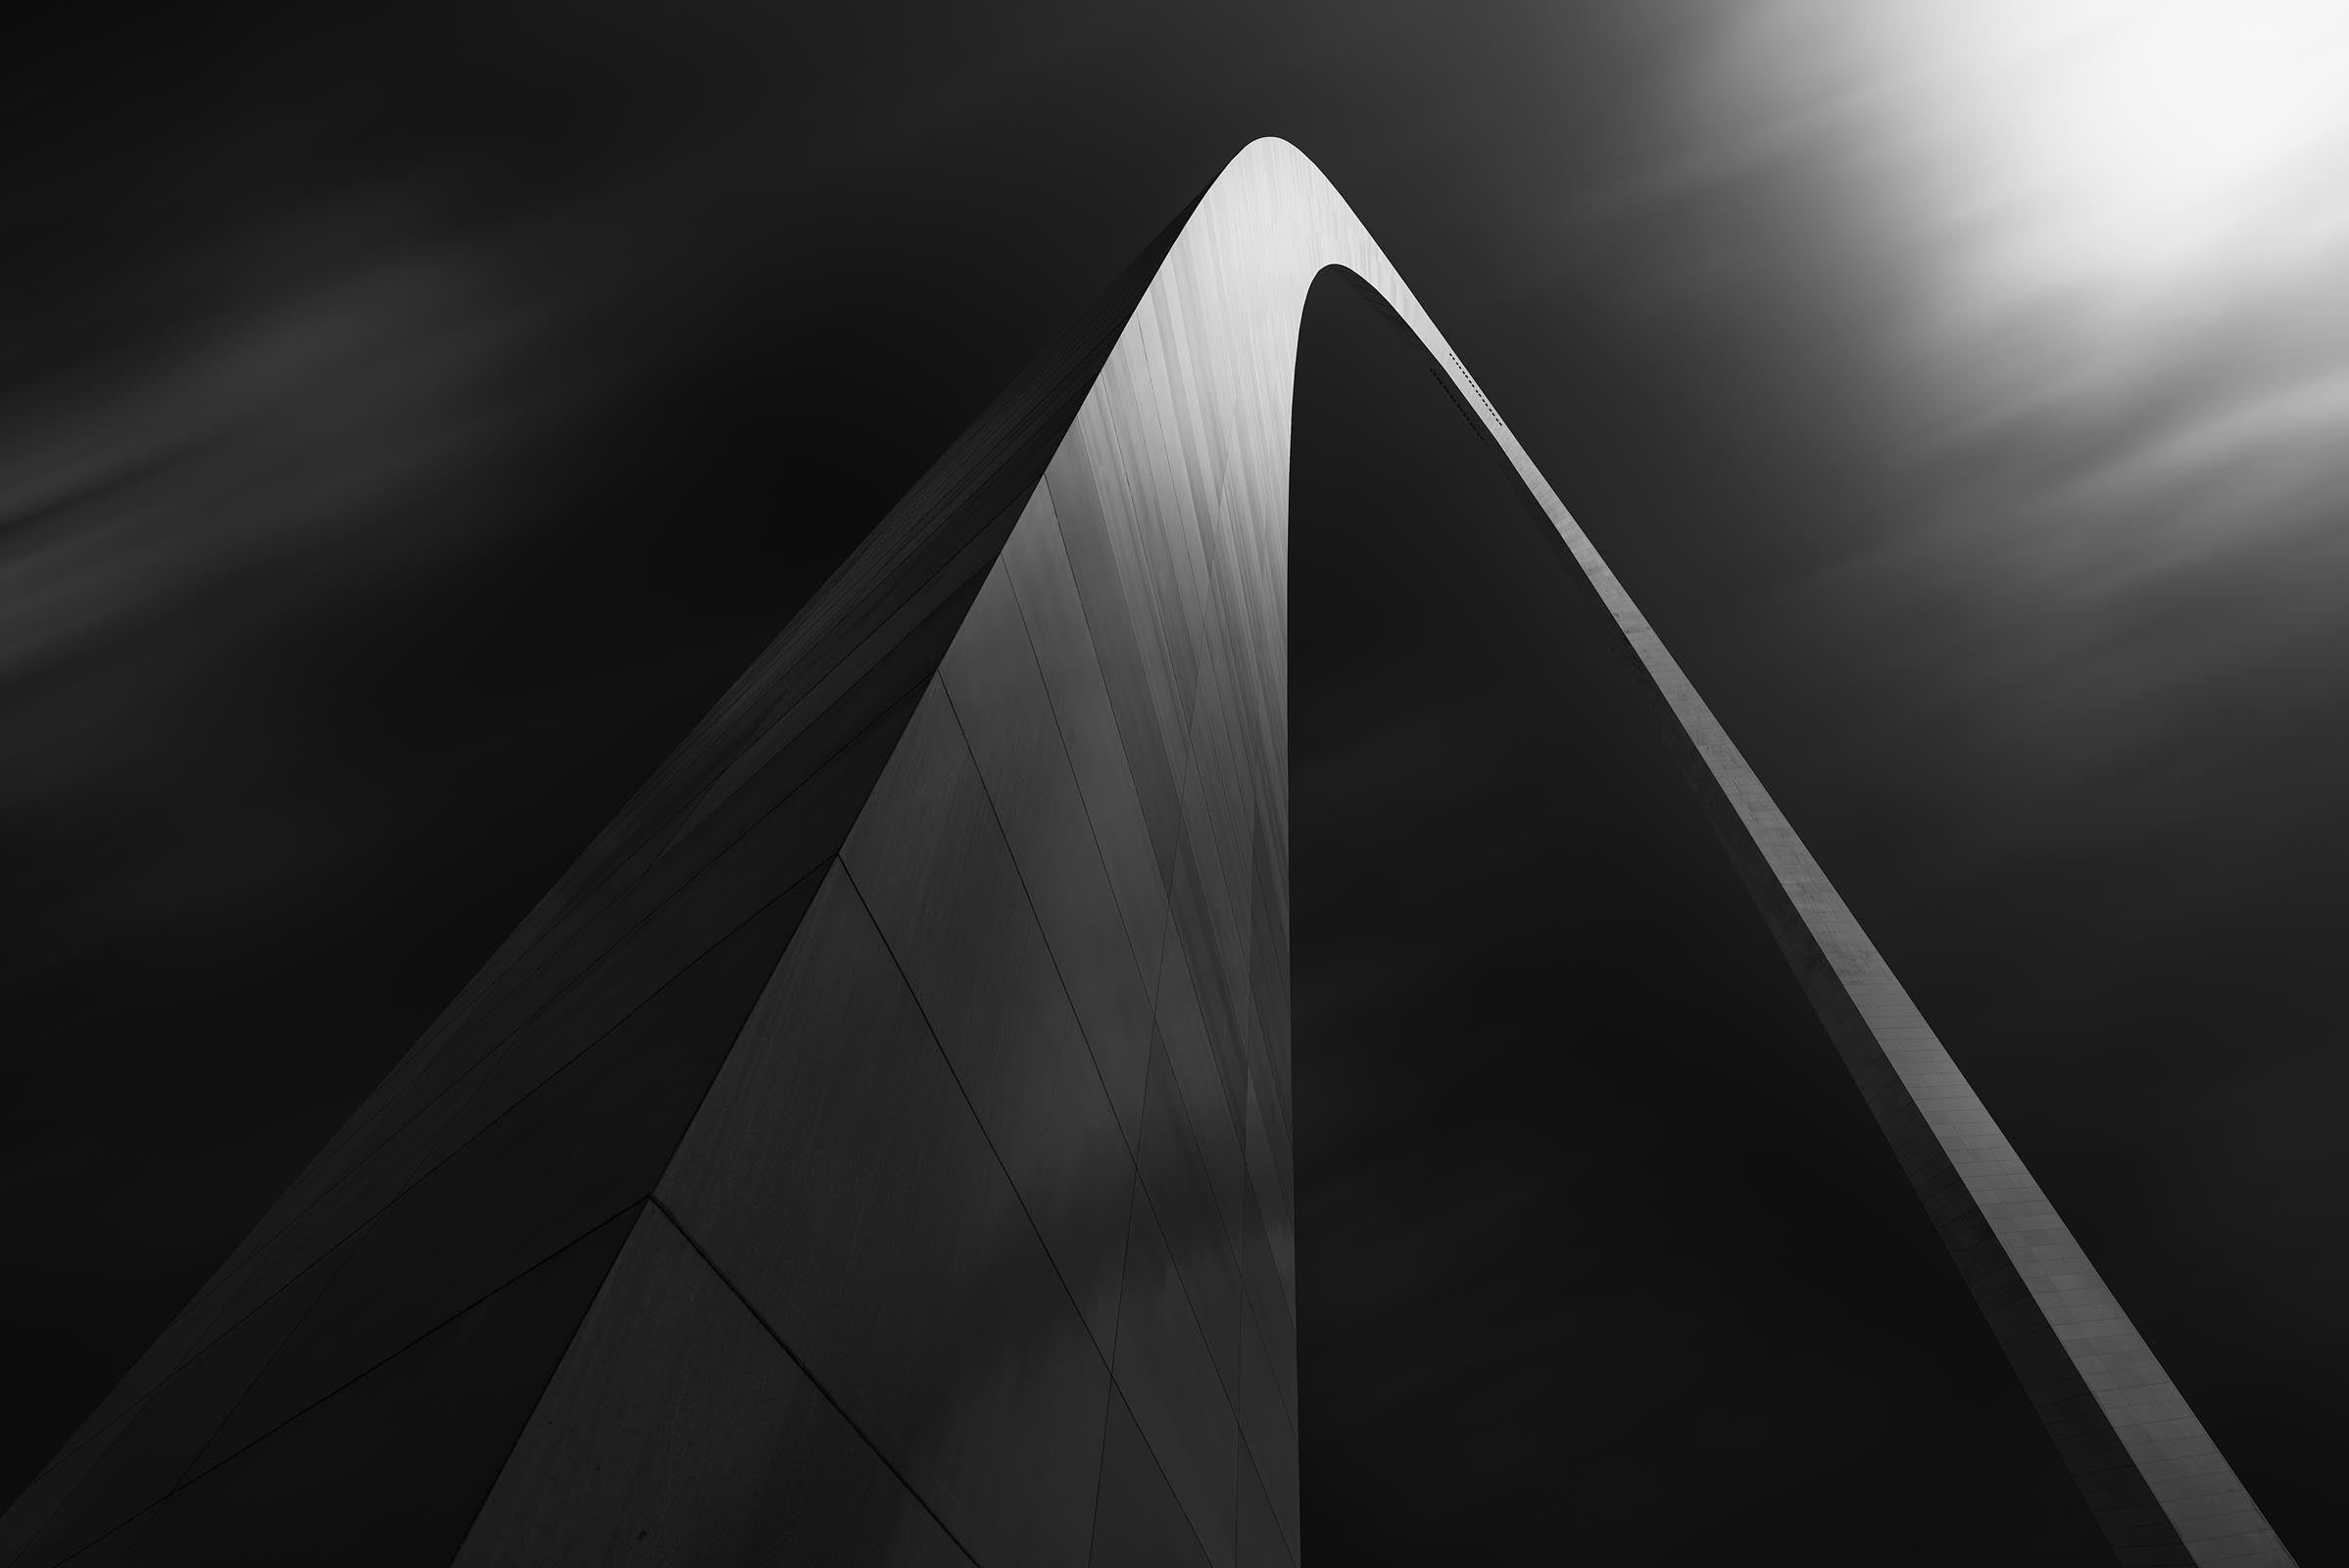 Photograph of Arch in St Louis, Missouri by Brent Goldman Photography